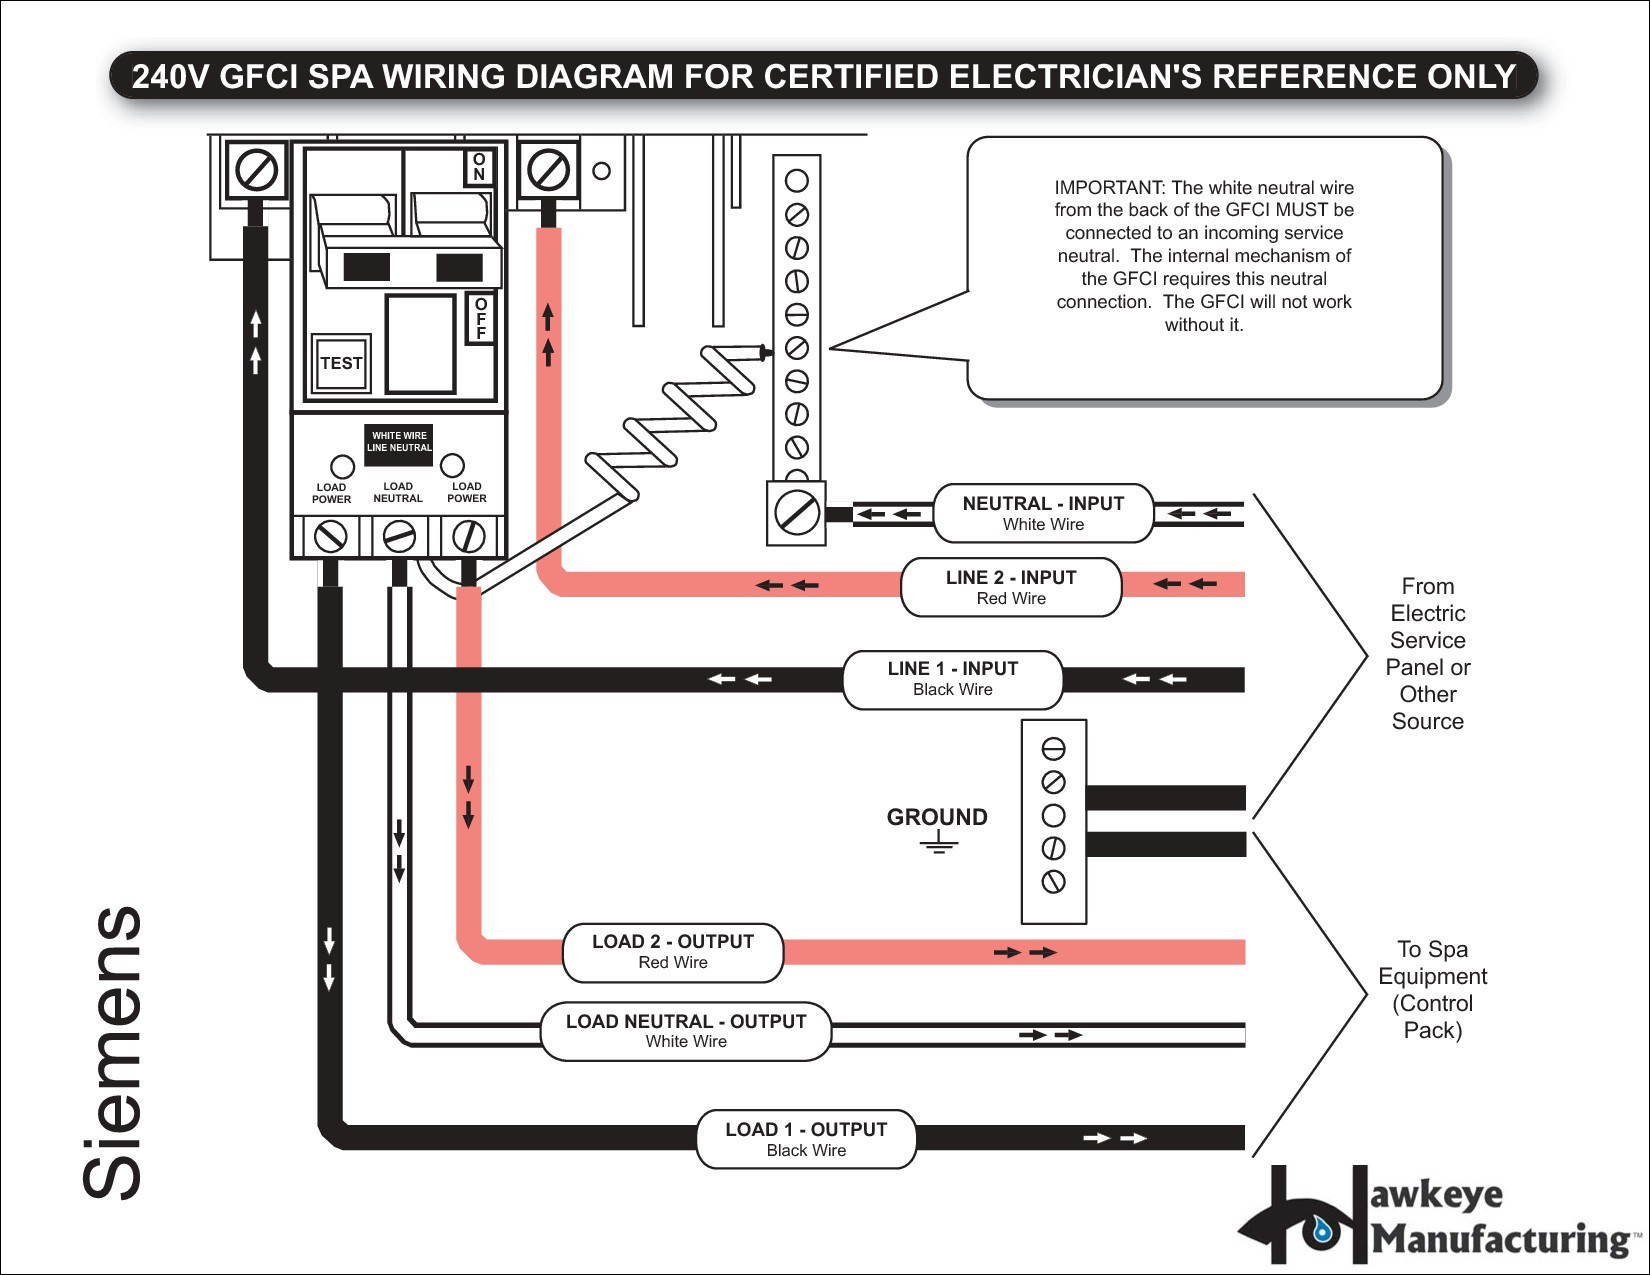 square d gfci breaker wiring diagram Collection-Wiring Diagram Gfci Breaker Save Wiring Diagram Gfci Outlet Valid 2 Pole Gfci Breaker Wiring Diagram 20-l